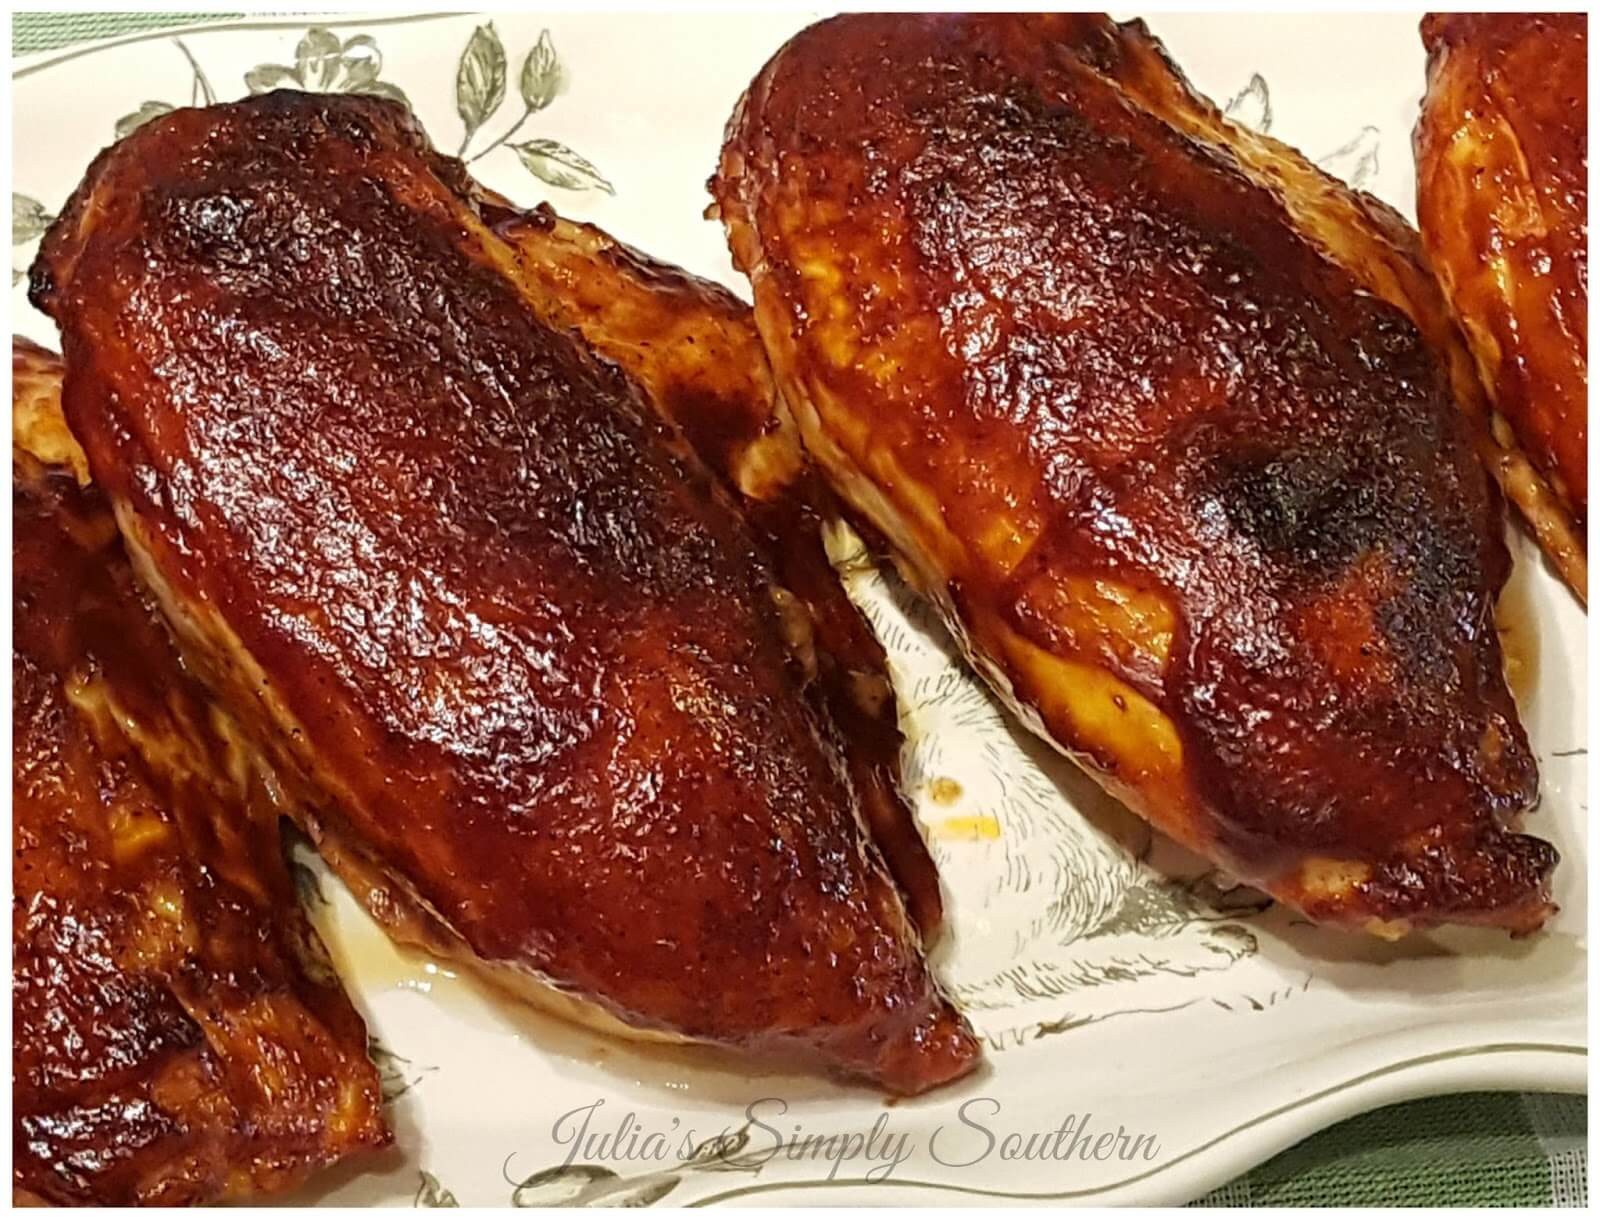 Southern Baked Barbecue Chicken Breast on a serving platter